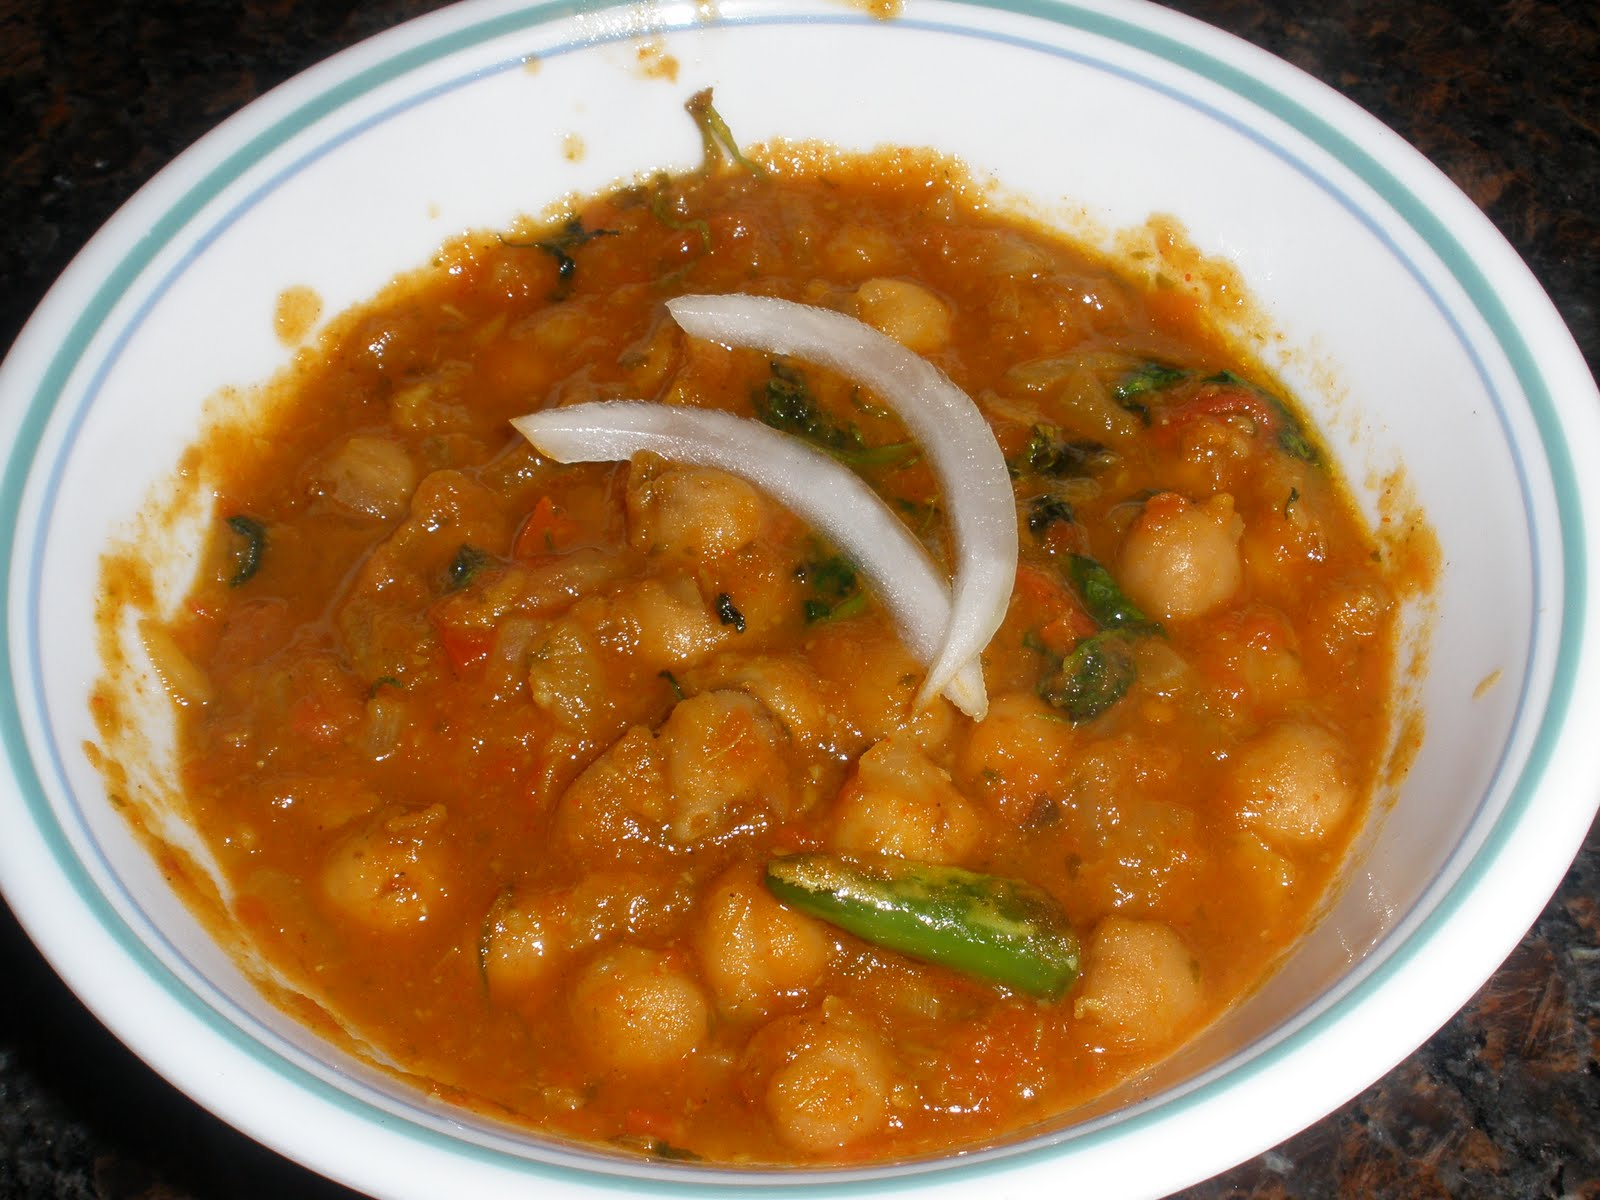 Nehal's Food and Garden: Chhole